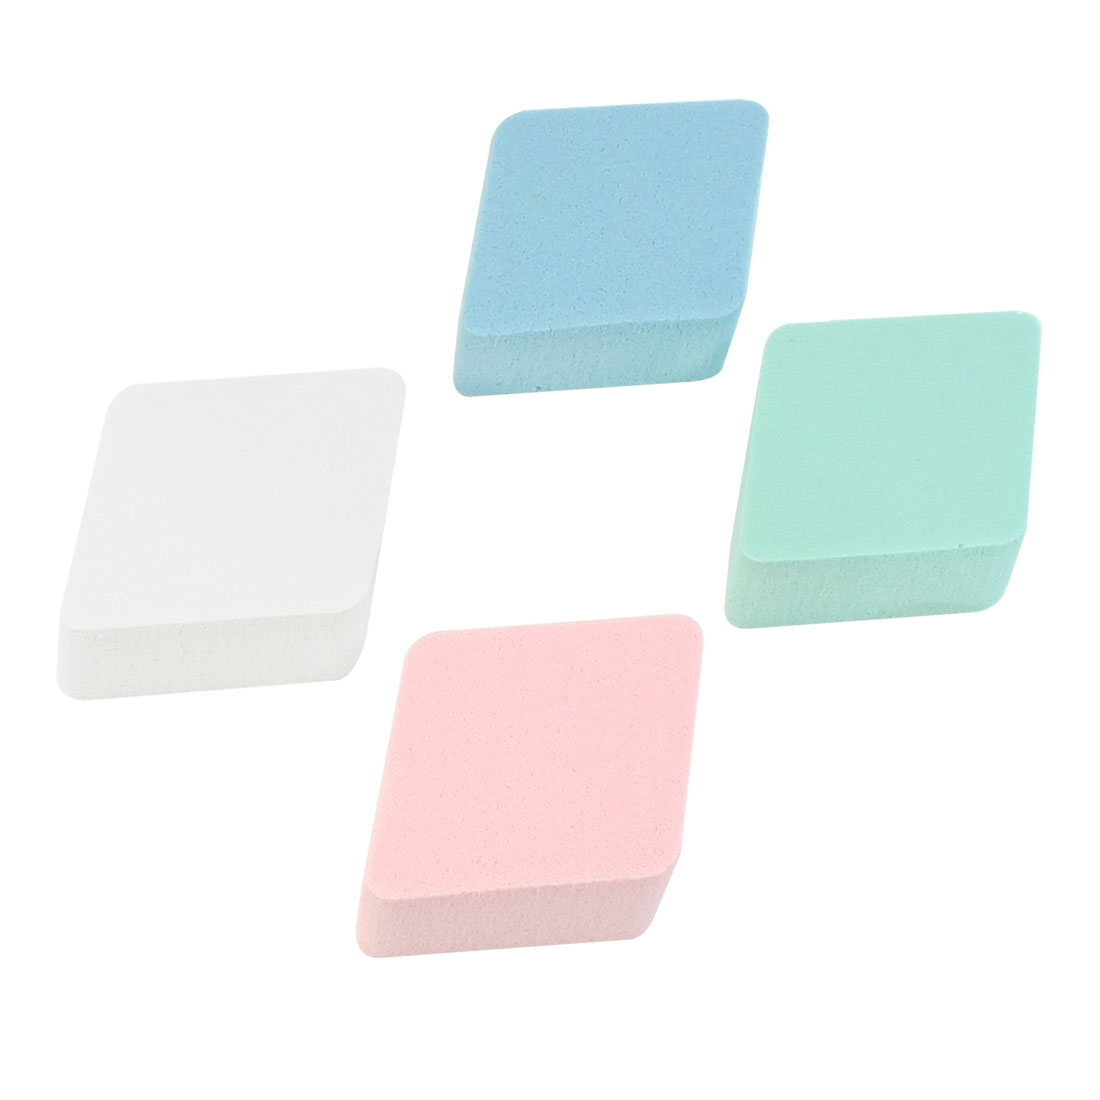 4 Pcs Soft Face Washing Cleansing Sponges Pads Puff Assorted Color for Lady